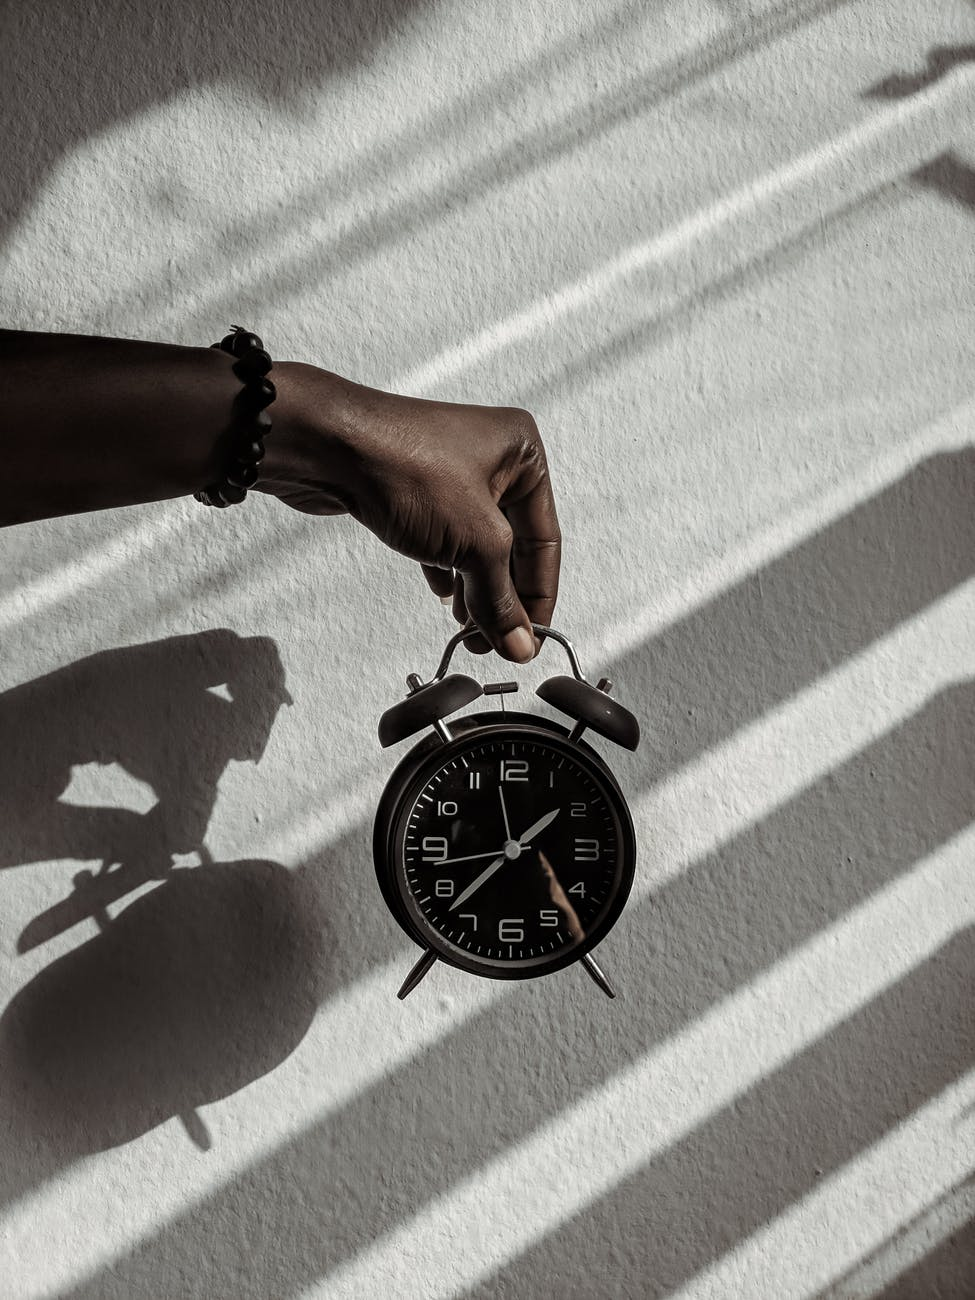 person holding a alarm clock